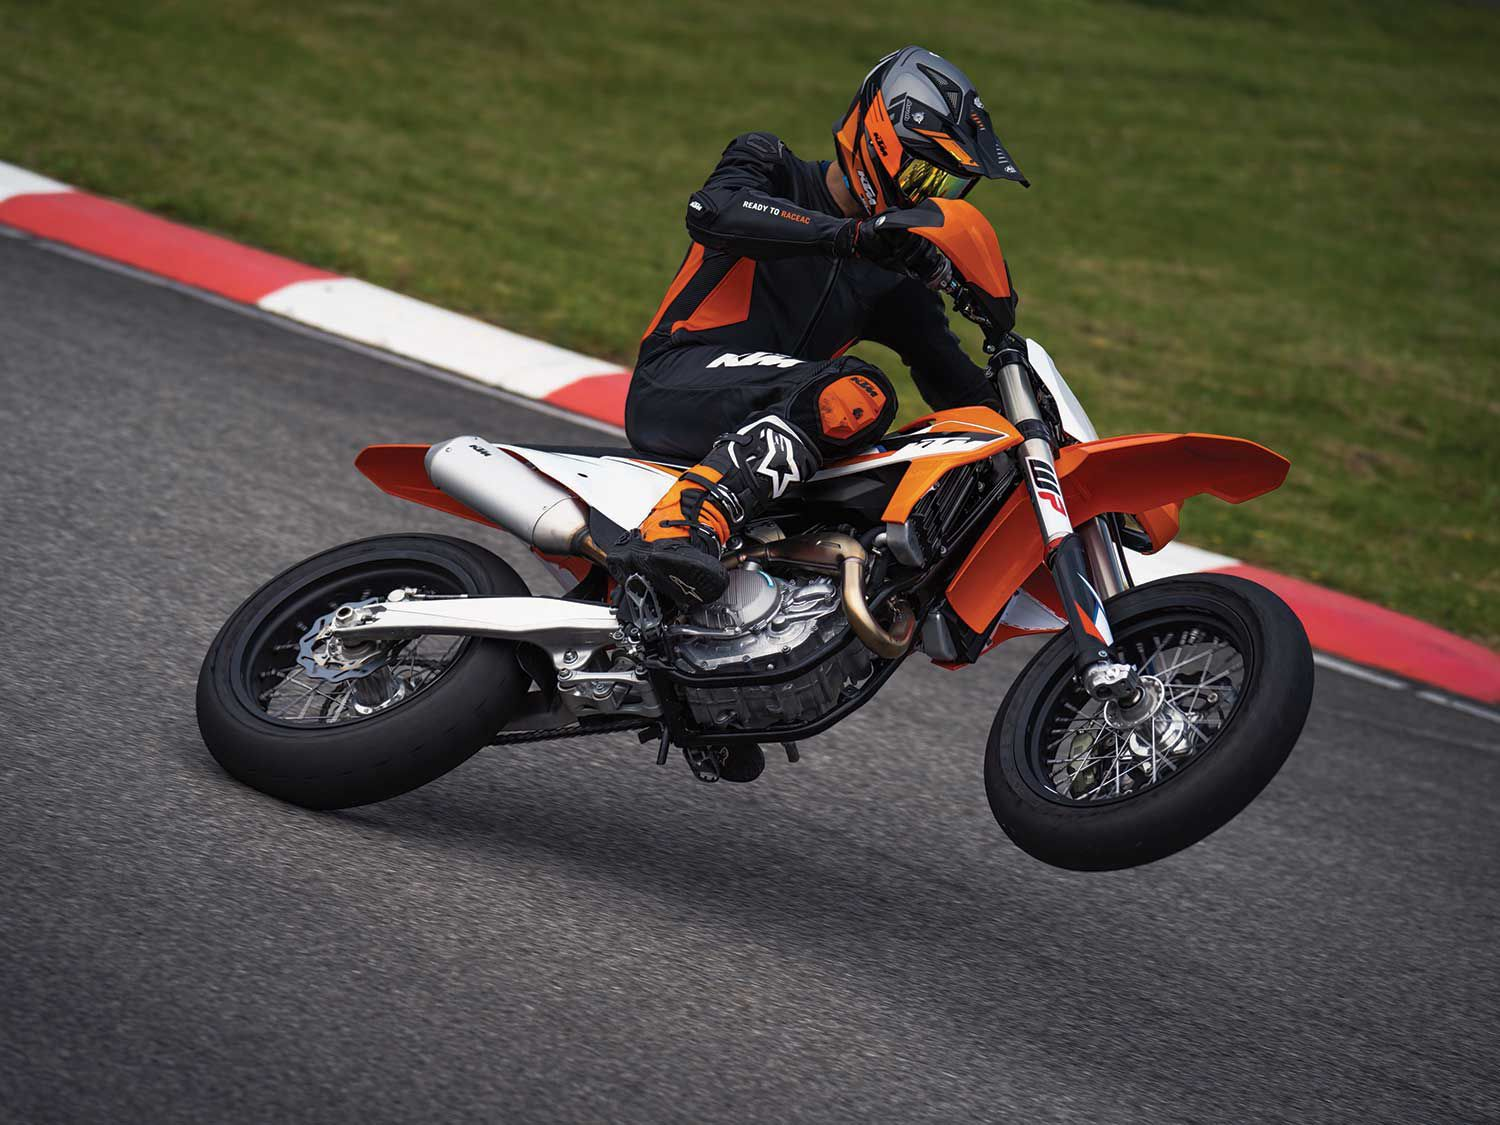 After a lengthy absence, KTM returns its closed-course and competition-spec 450 SMR to its 2021 US model lineup.